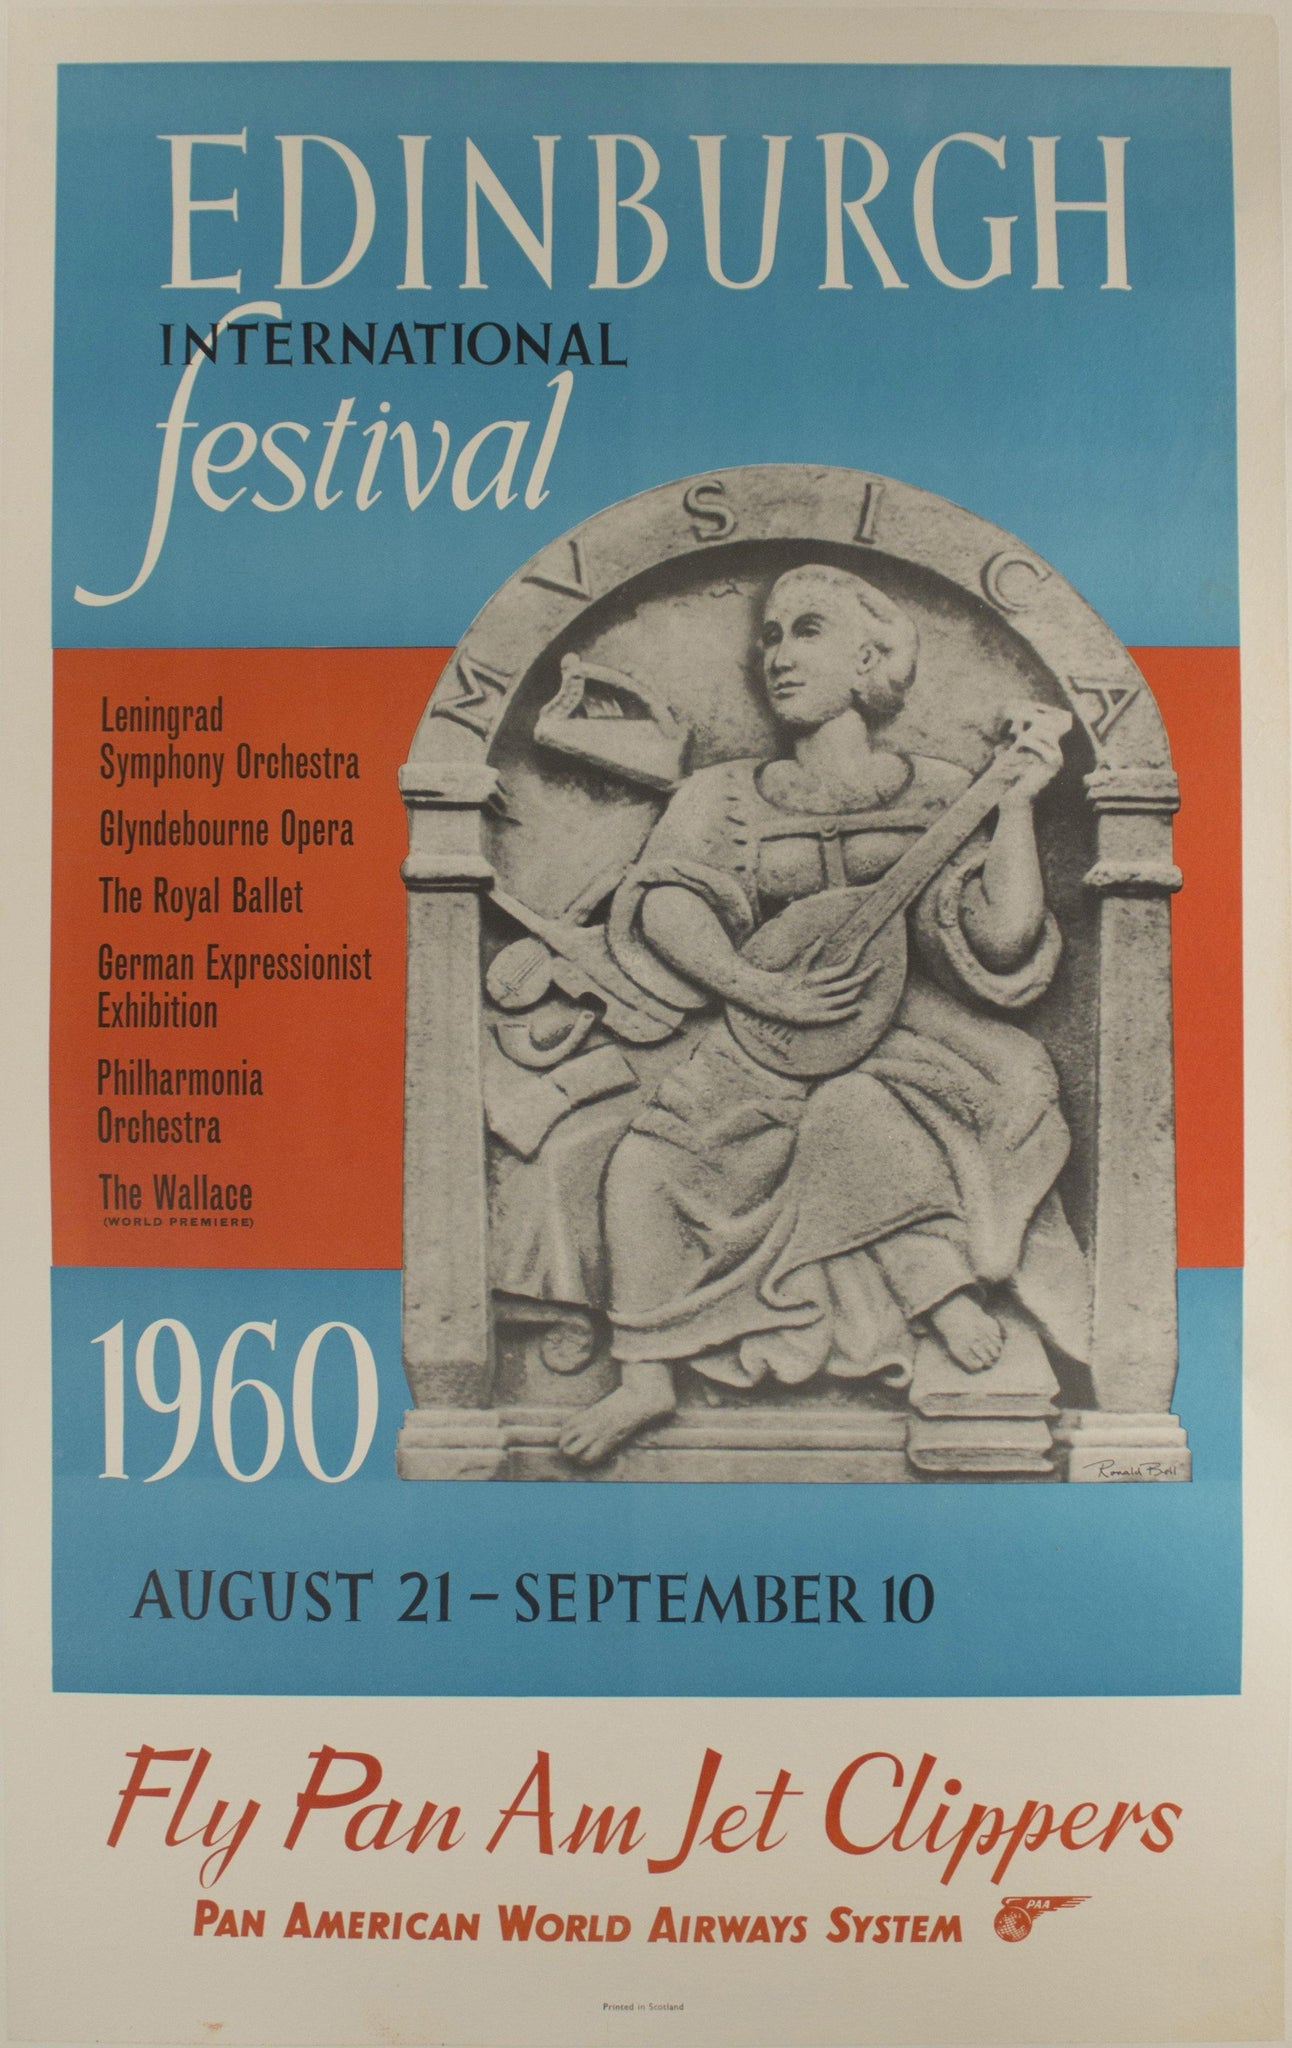 1960 Edinburgh International Festival by Ronald Bell - Golden Age Posters